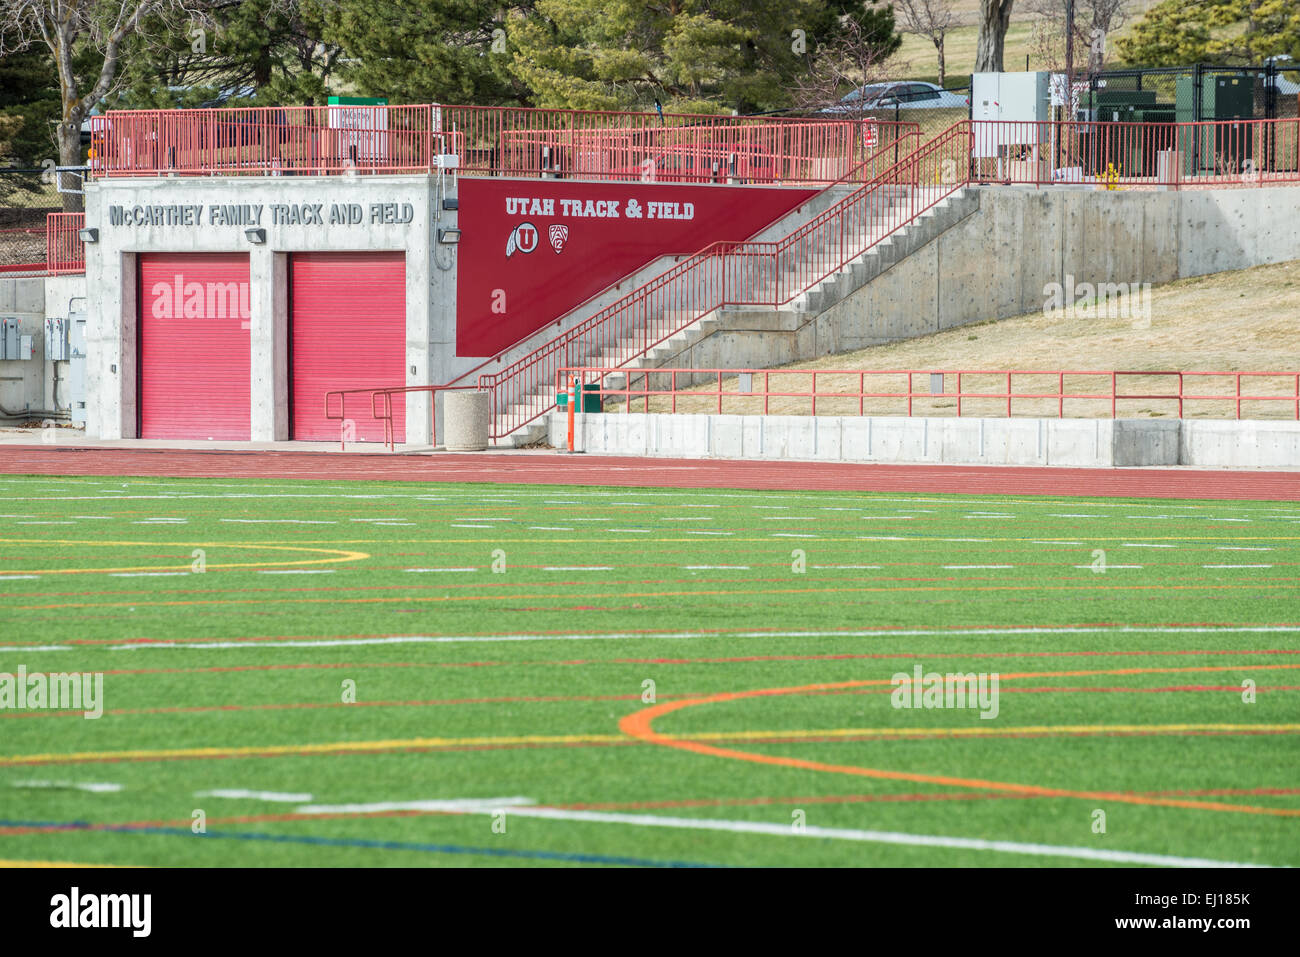 University of Utah outdoor Track and Field - Stock Image